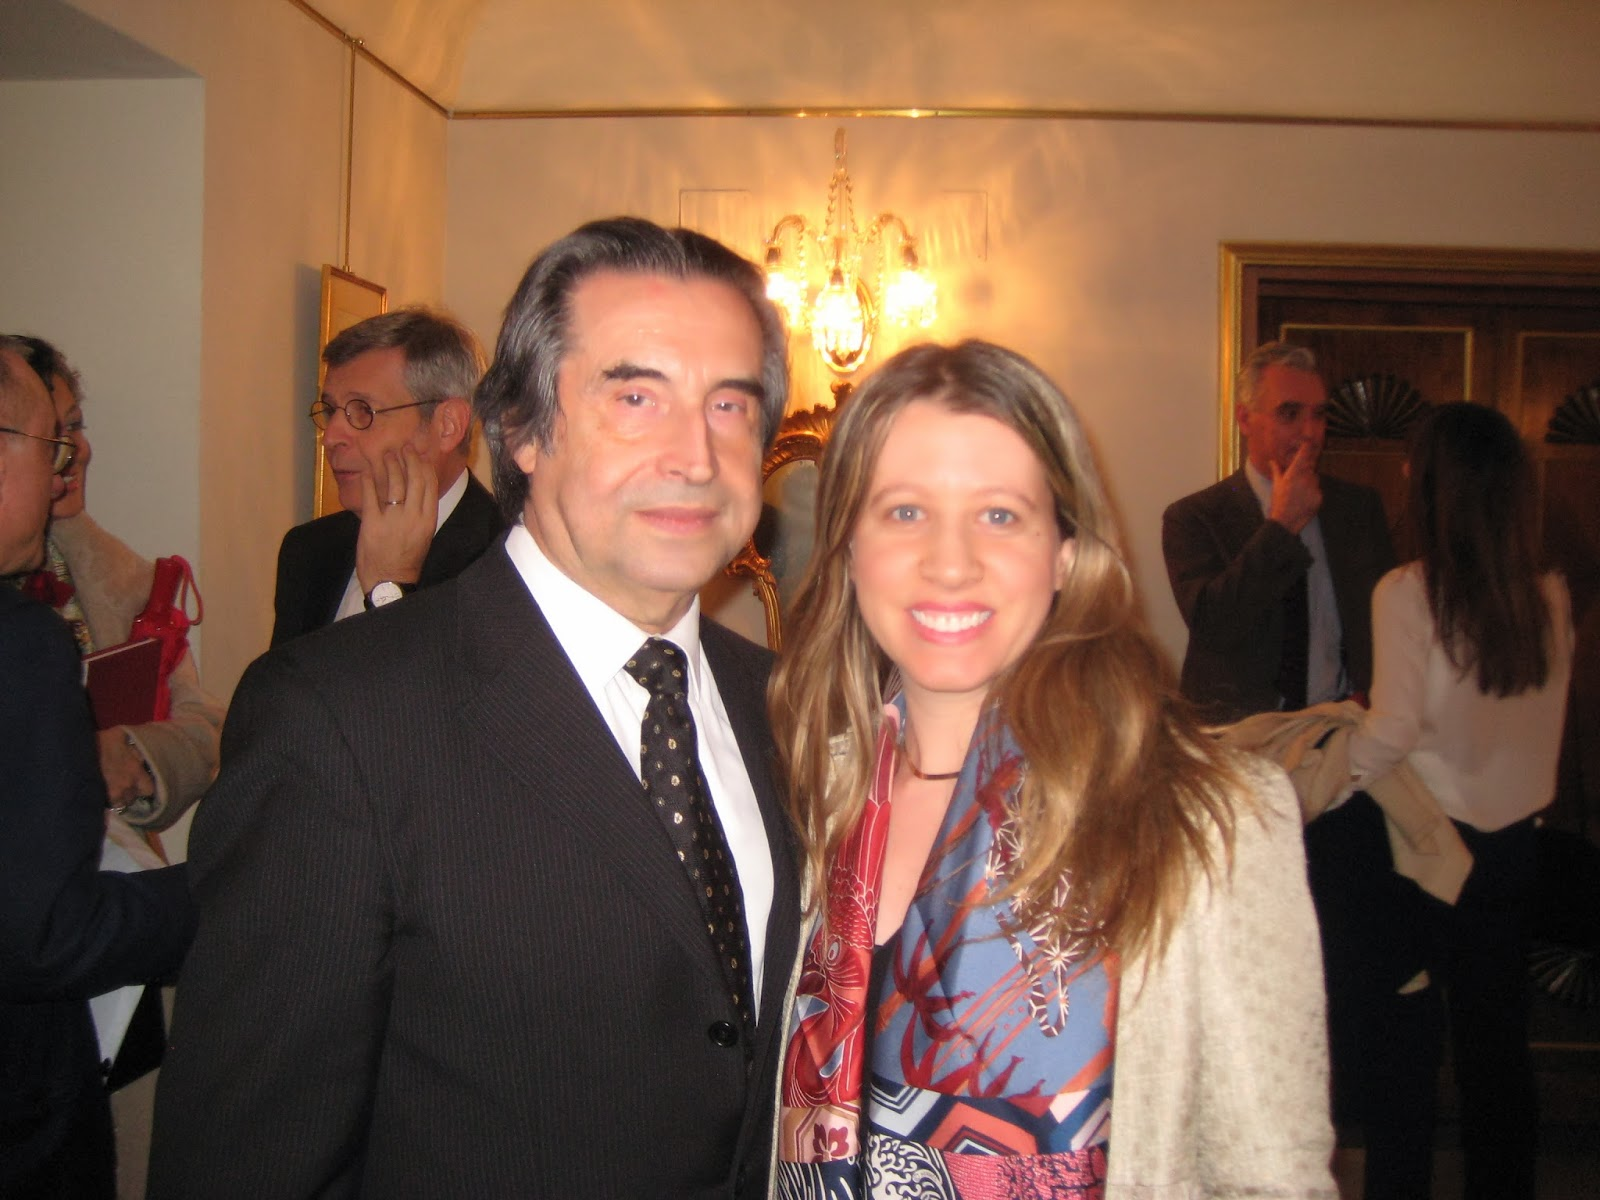 With Maestro Riccardo Muti after a performance of Verdi's  I Due Foscari  at the Teatro dell'Opera di Roma.